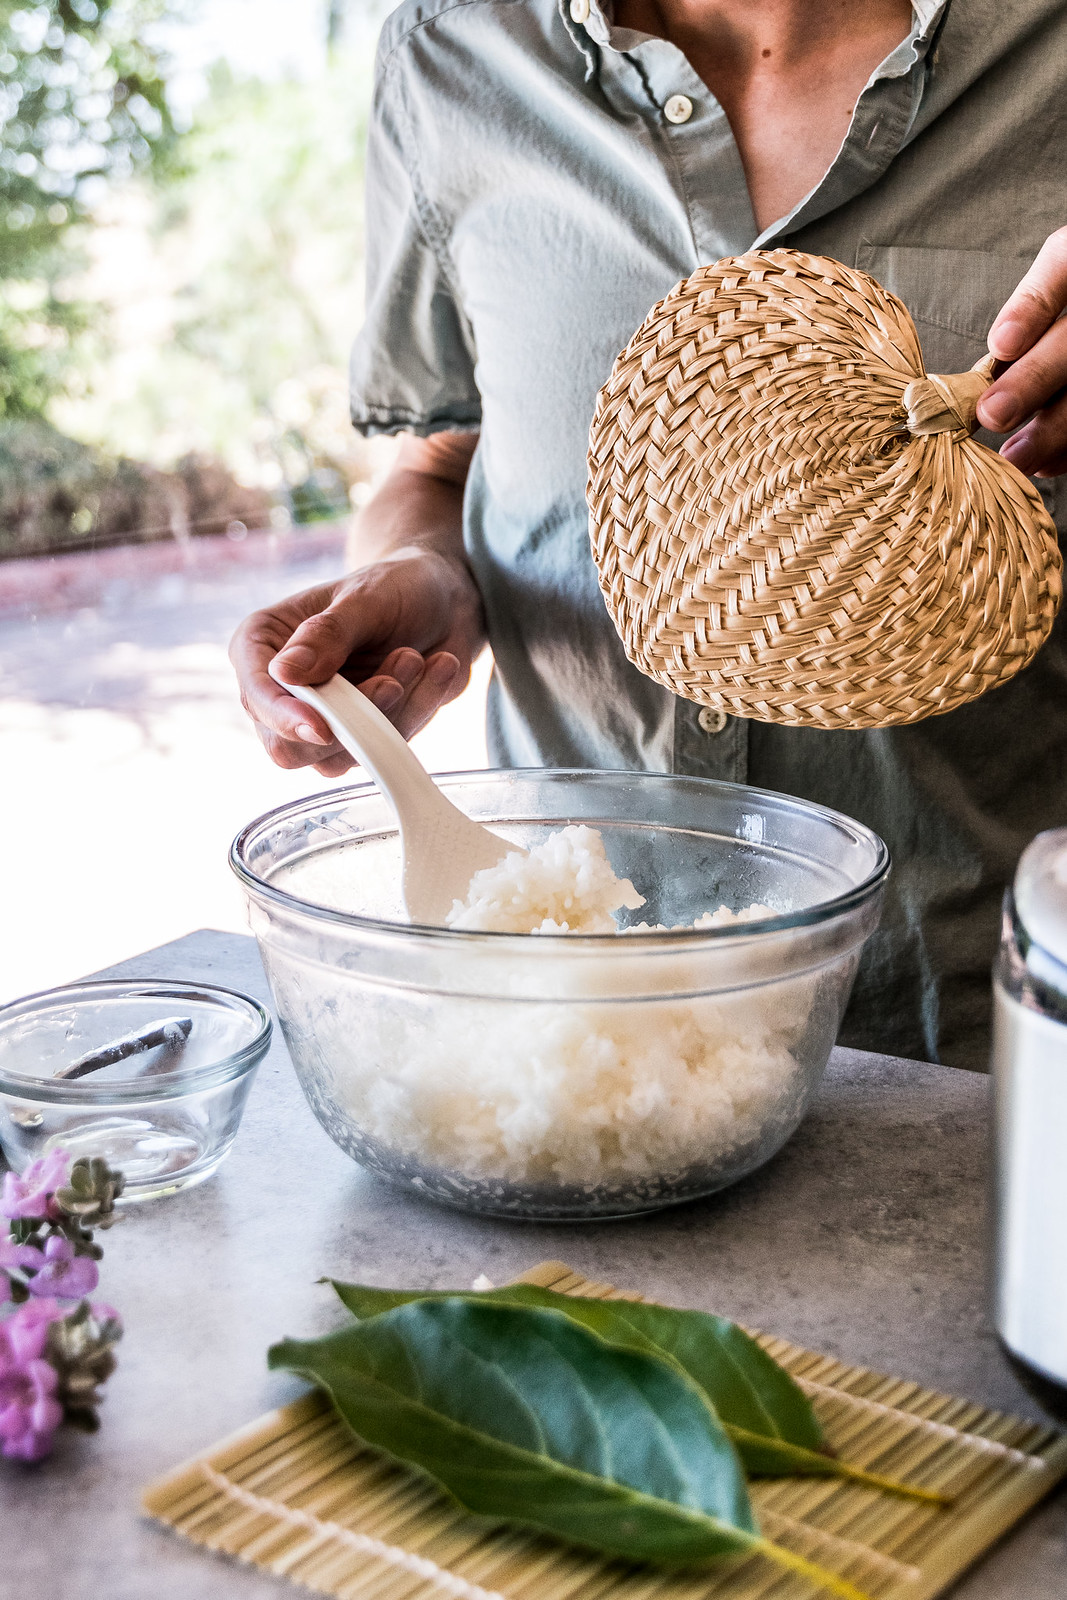 fanning the rice to cool it quickly